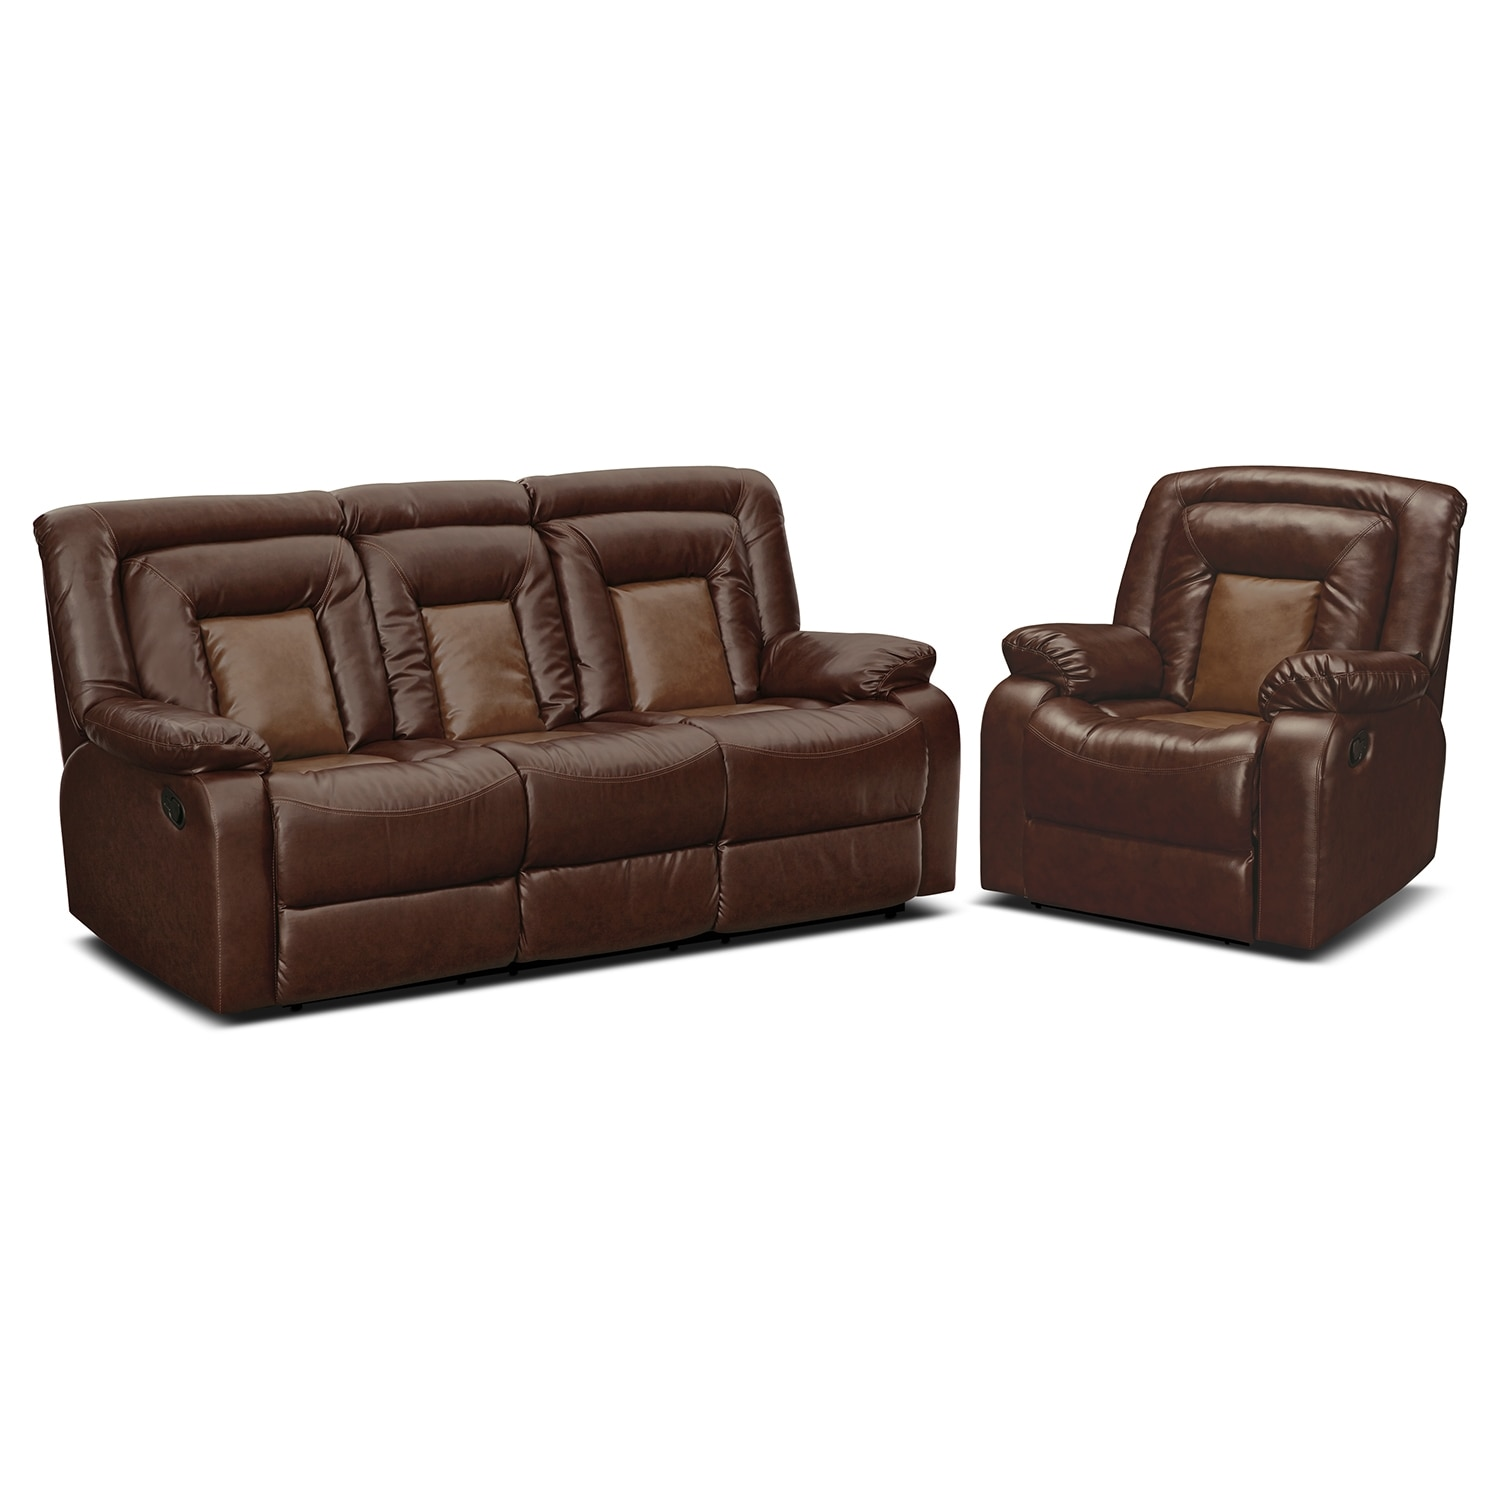 Living Room Furniture - Cobra 2 Pc. Reclining Living Room w/Recliner